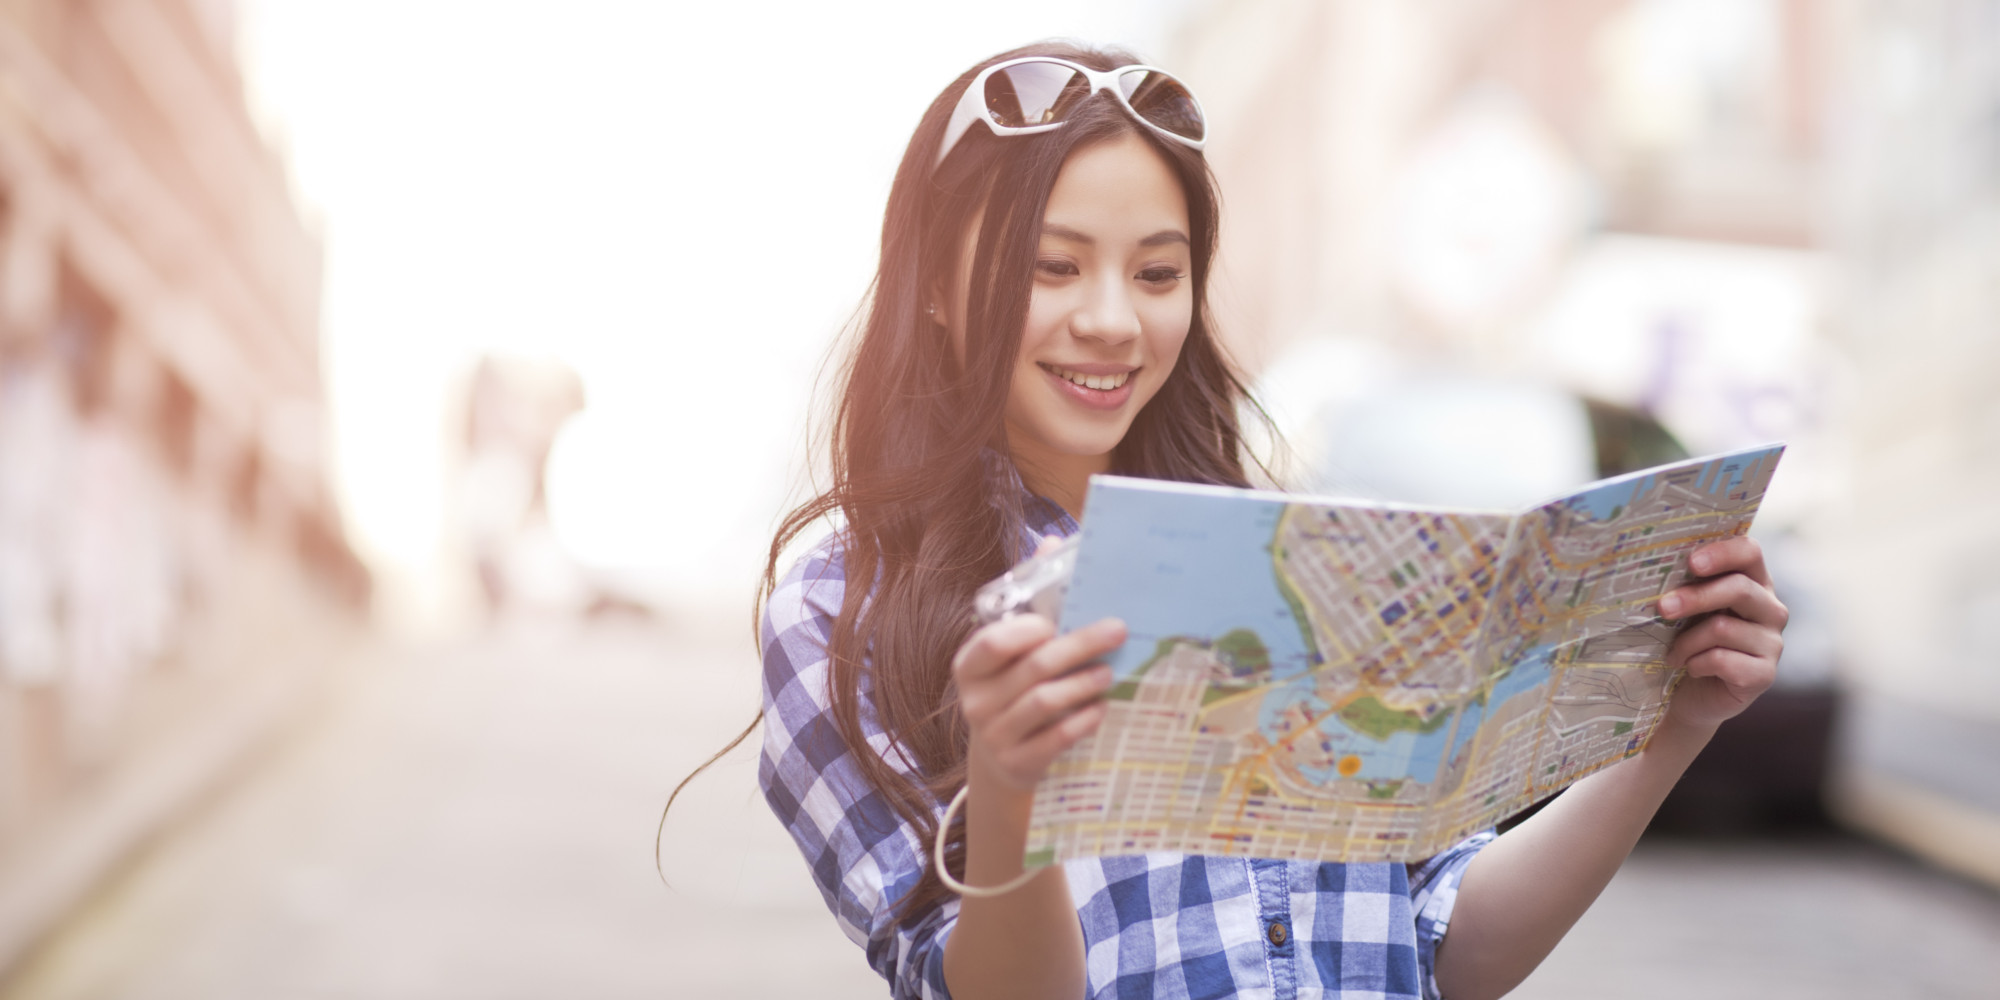 Chinese woman looking at map